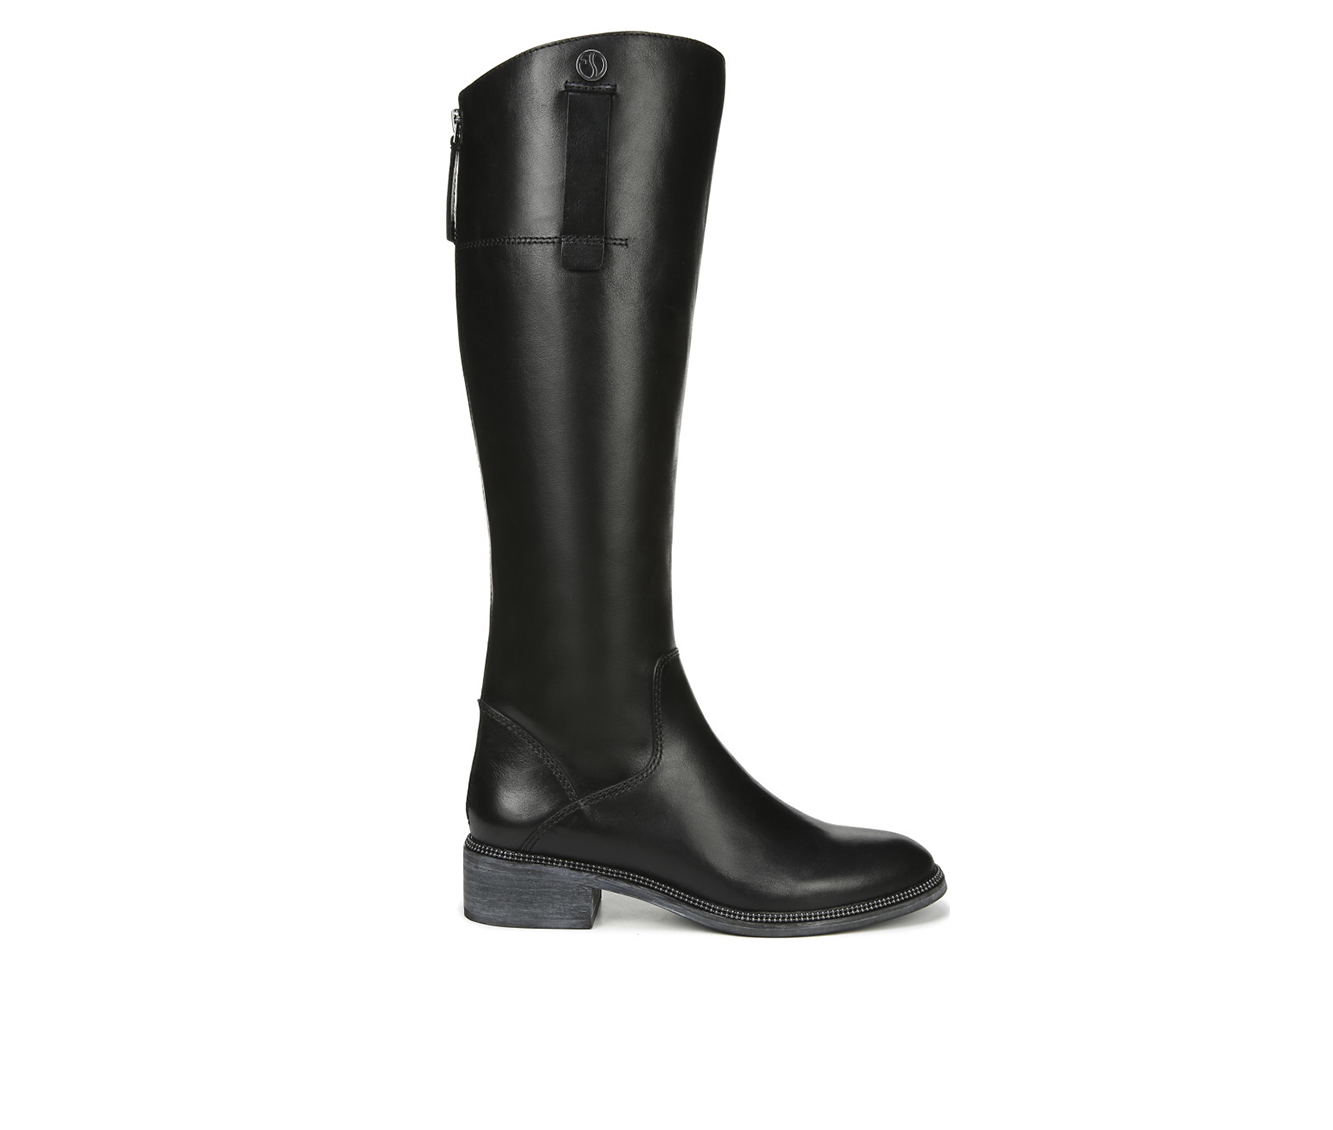 Franco Sarto Becky Women's Boots (Black - Leather)